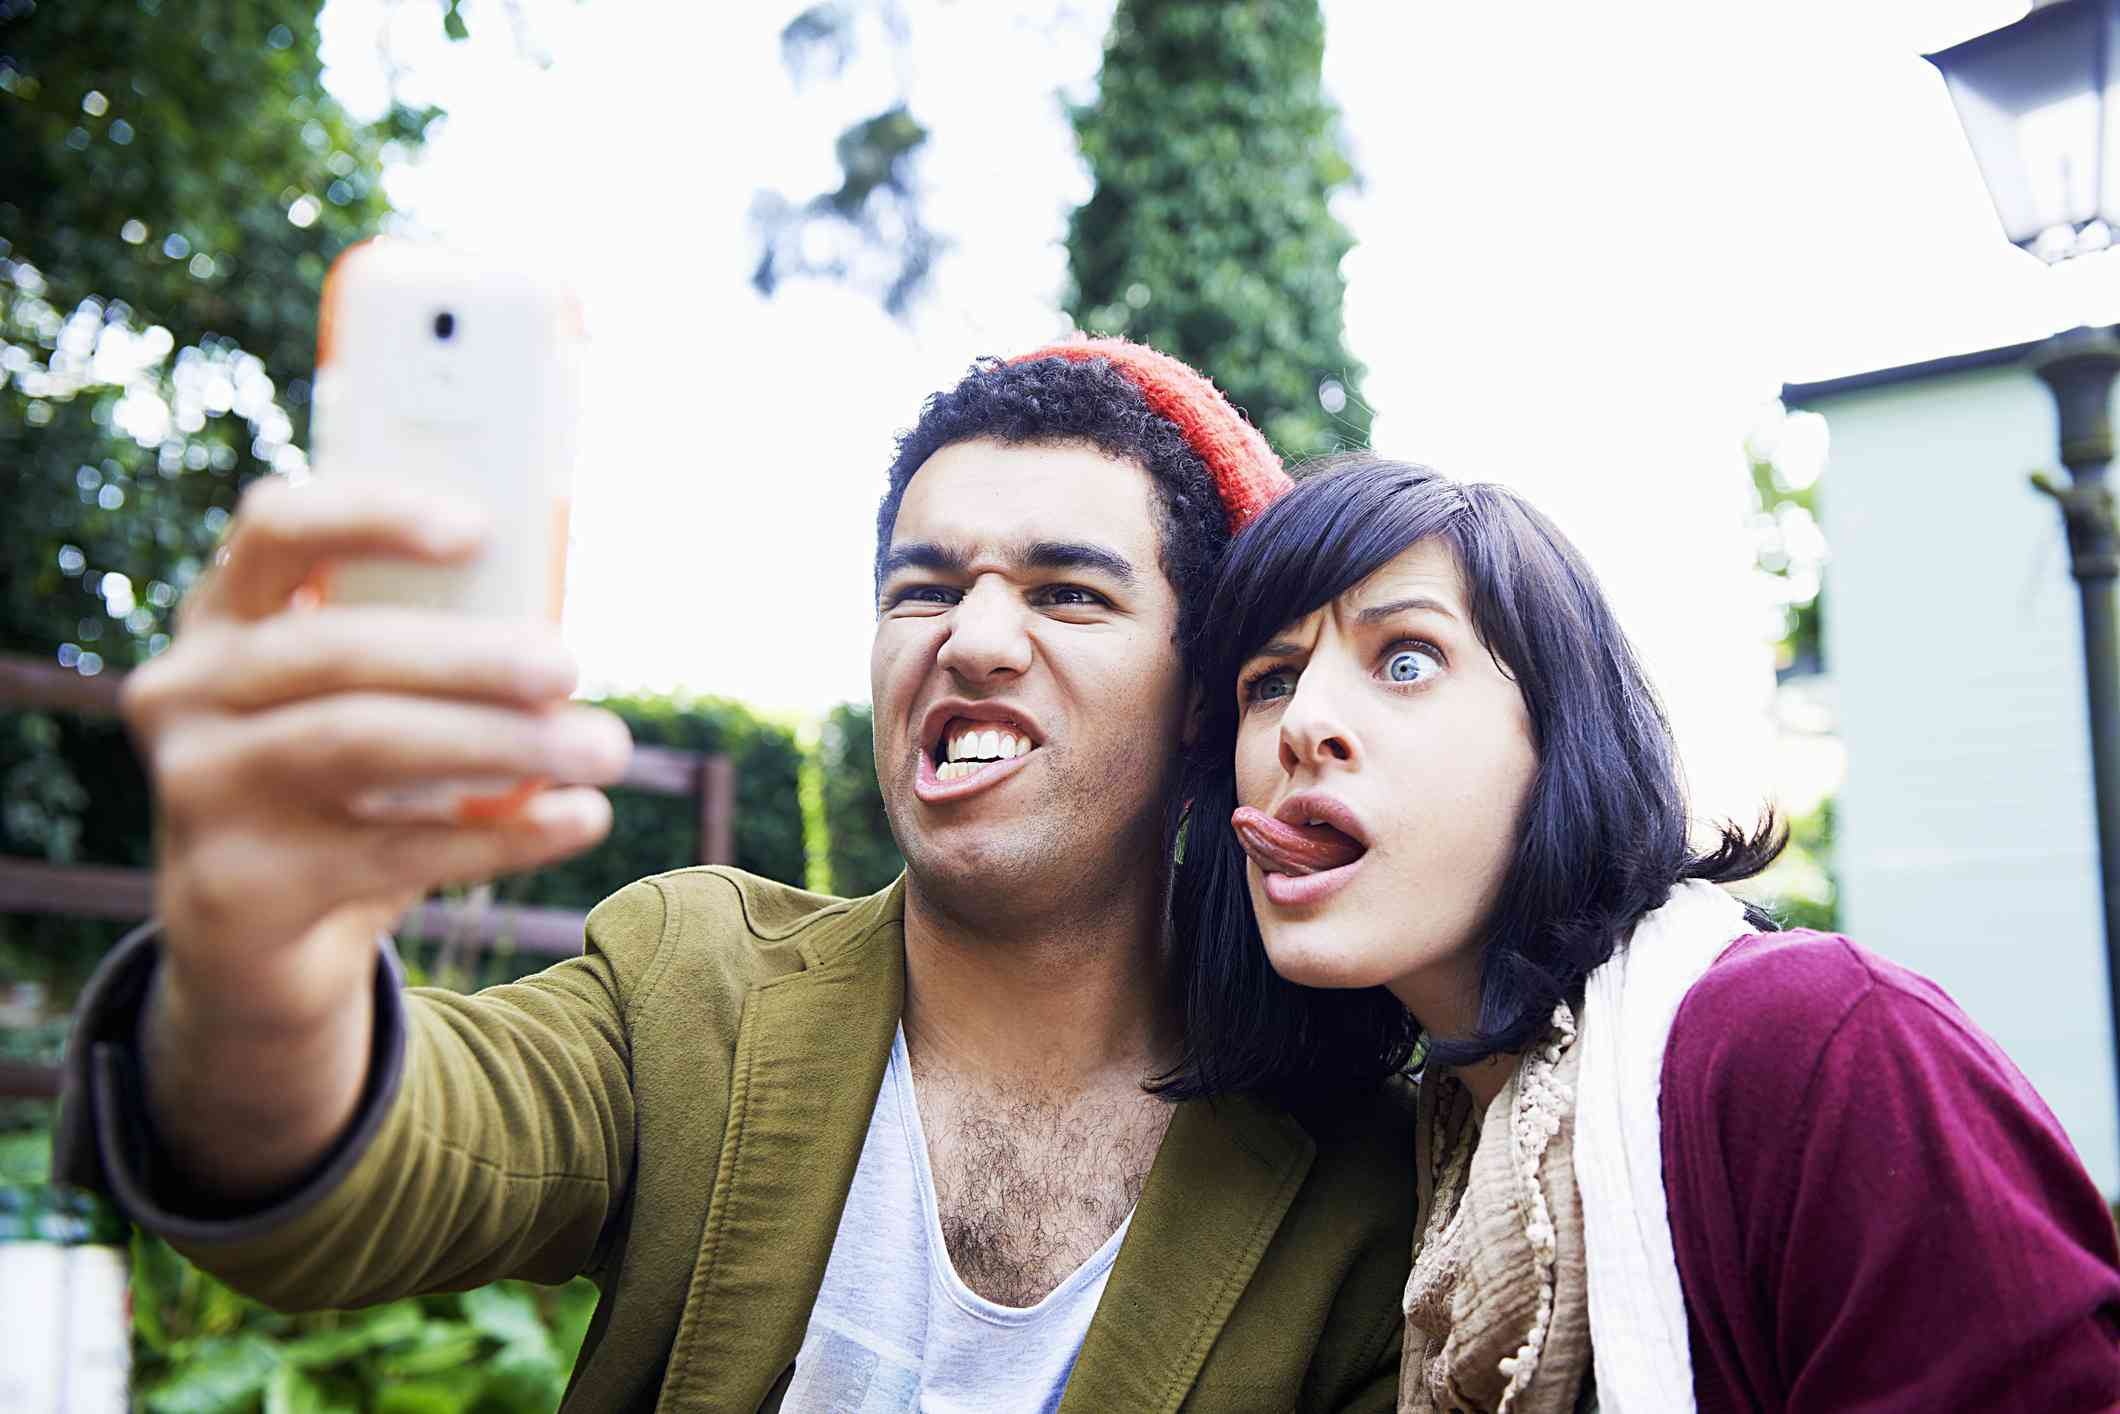 Two people taking a selfie making funny faces.